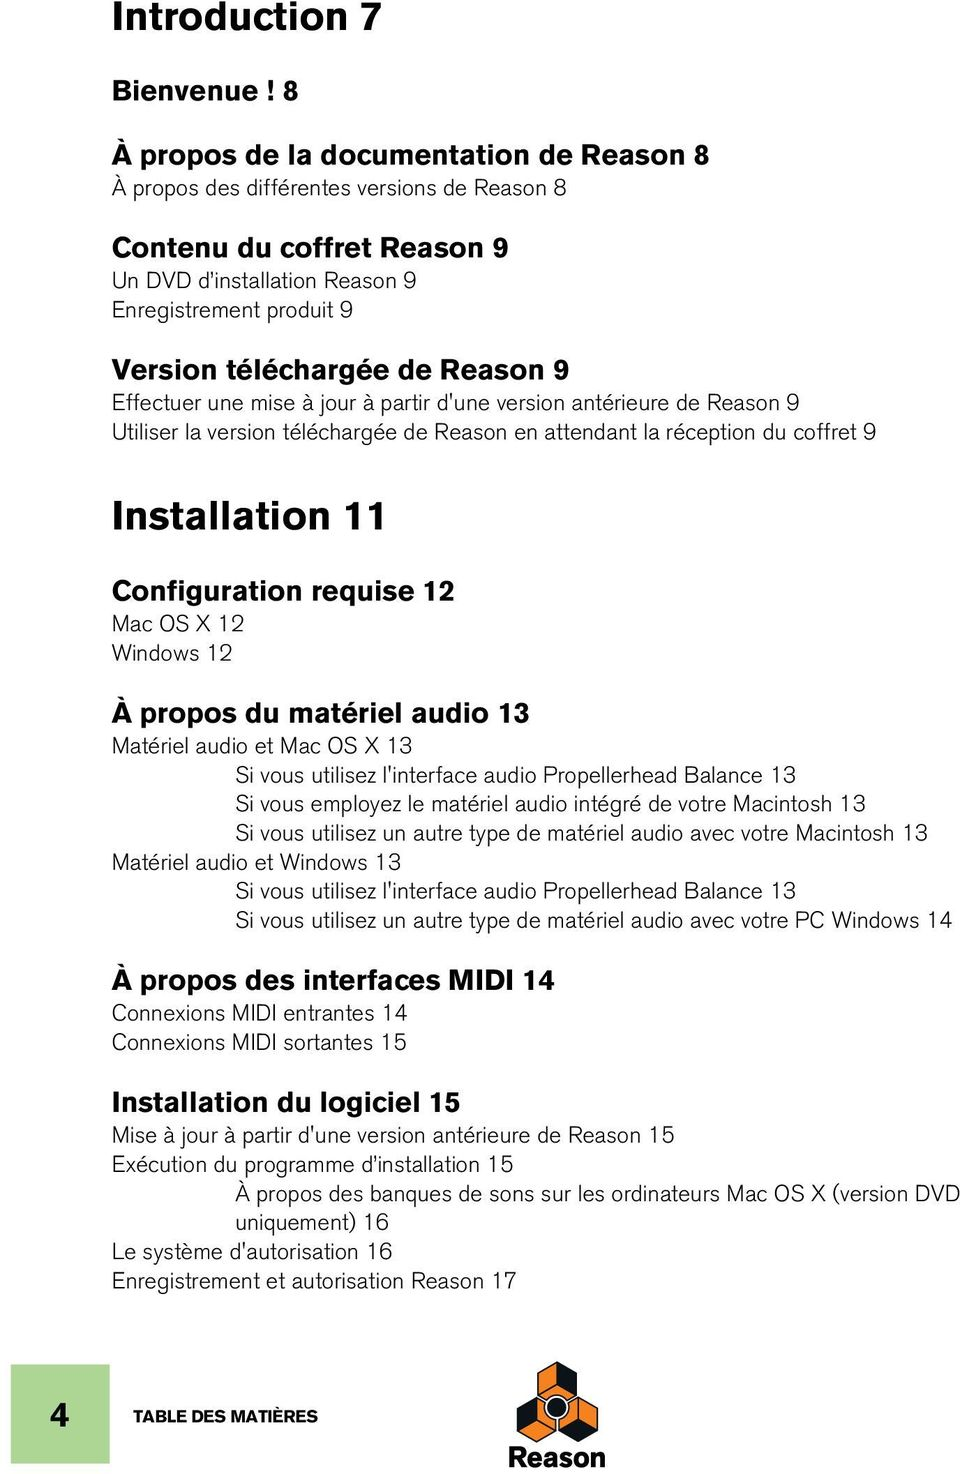 Reason 9 Effectuer une mise à jour à partir d'une version antérieure de Reason 9 Utiliser la version téléchargée de Reason en attendant la réception du coffret 9 Installation 11 Configuration requise